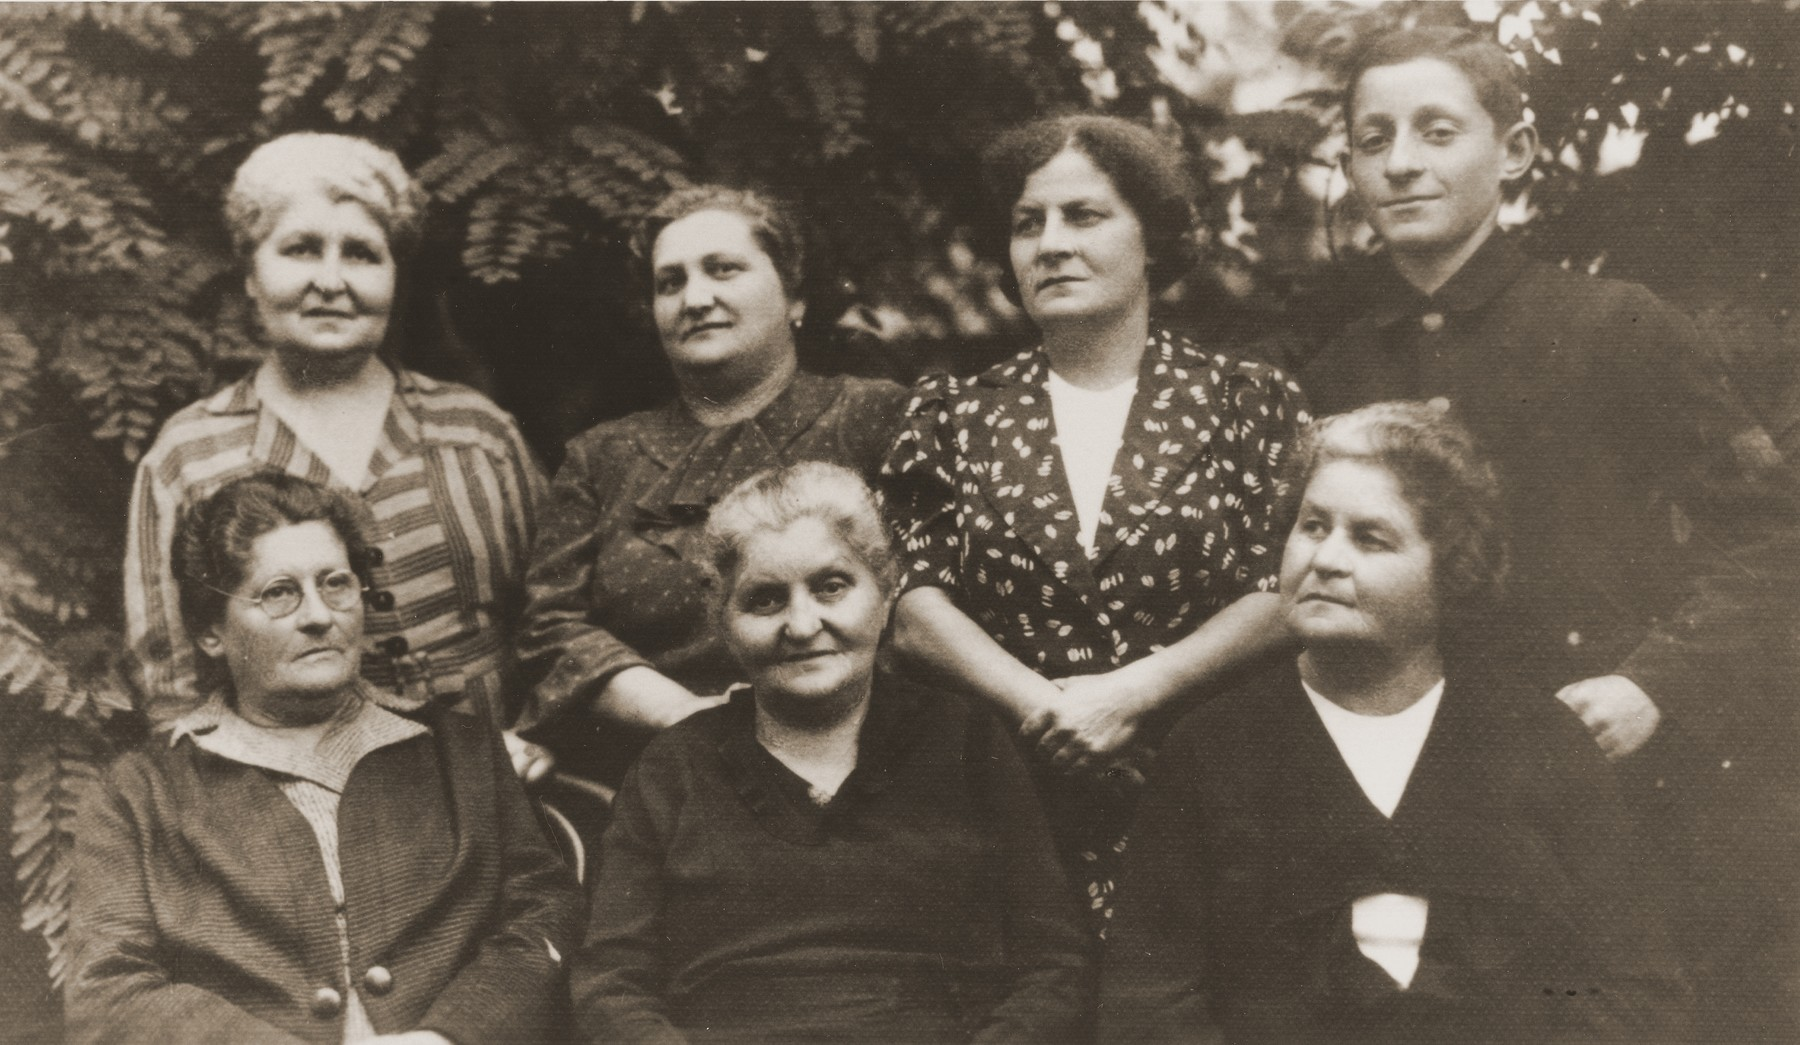 Emma Wurmbrand Hirsch with her four sisters, niece and nephew.    Pictured standing from left to right are:  Berta Wurmbrand Vogel; Sidi Silberbusch Star; Shulamith Wurmbrand; and Yochanan Wurmbrand.  Seated from left to right are:  Emma Wurmbrand Hirsch; Pepi Wurmbrand Silberbusch; Lotti Wurmbrand Roth.